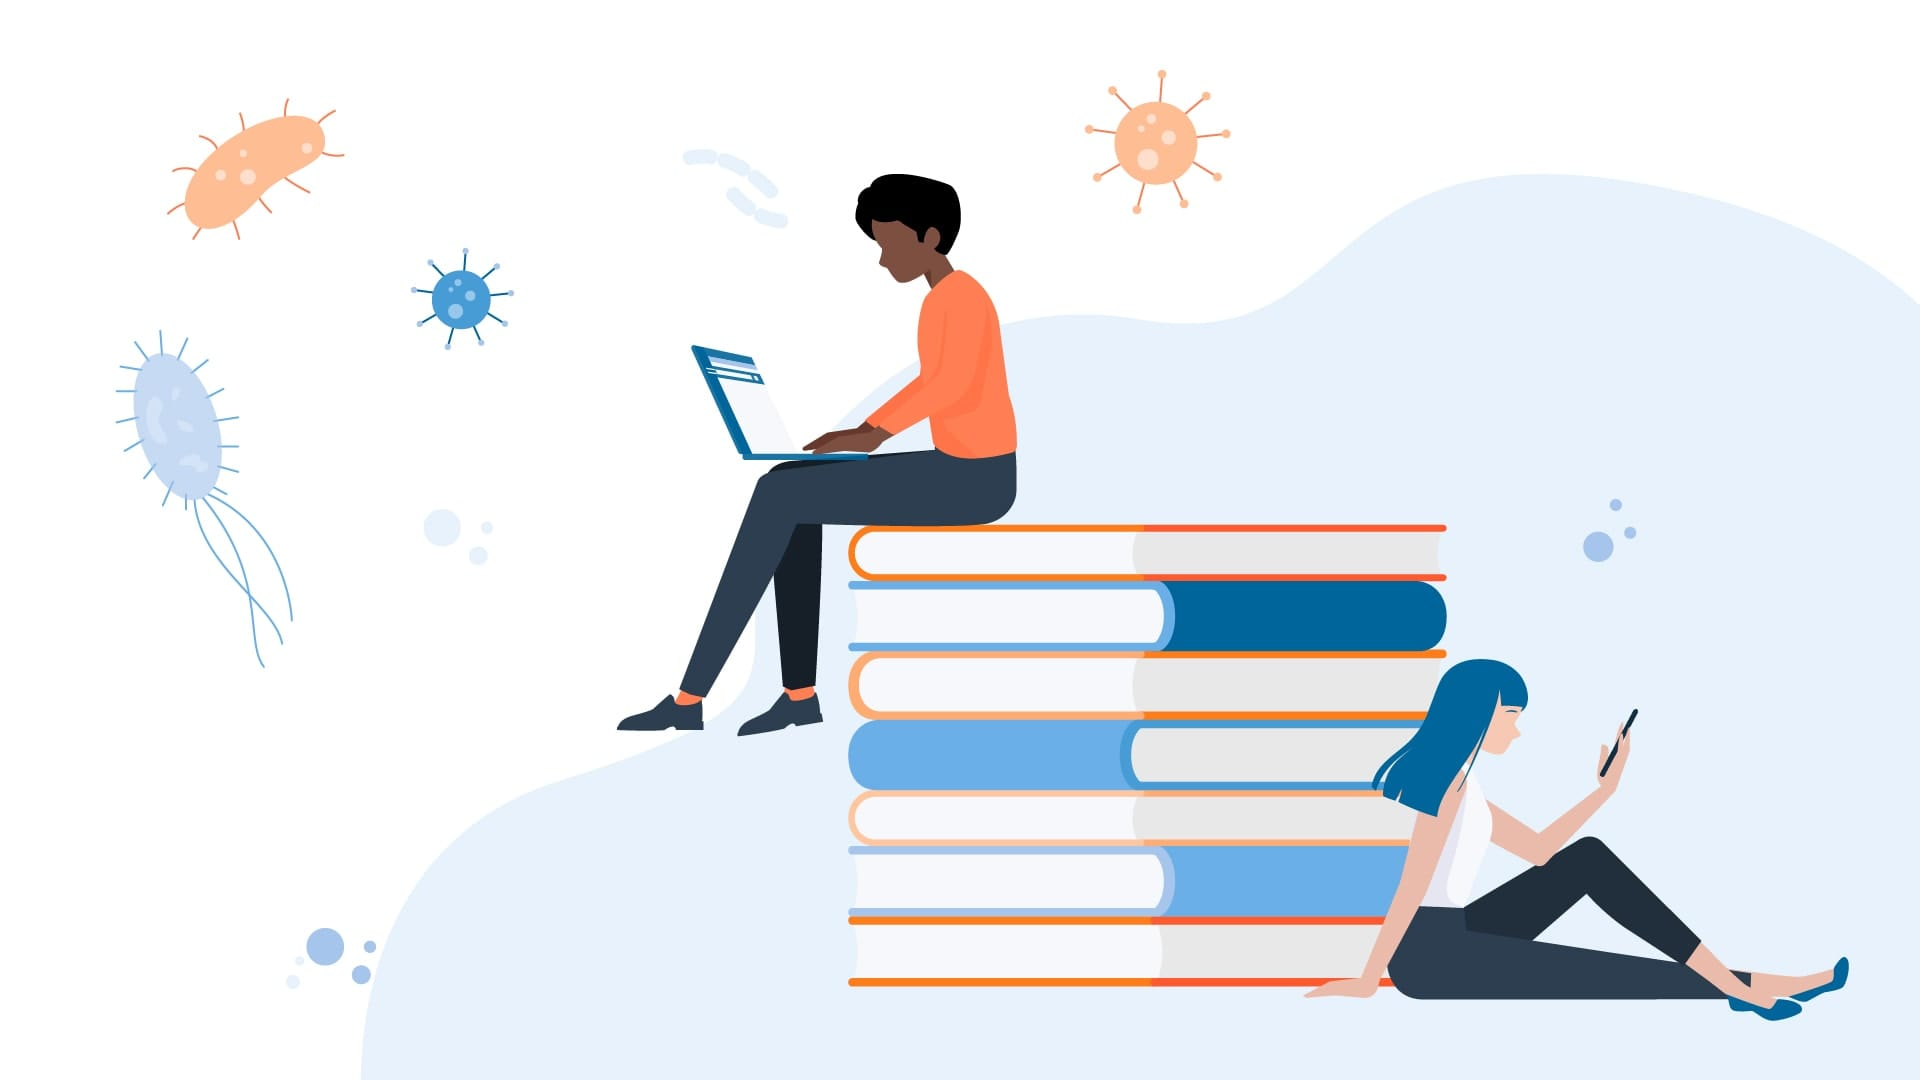 Illustration of college students sitting on an oversized stack of books, tiny cartoon viruses and bacteria floating around them.